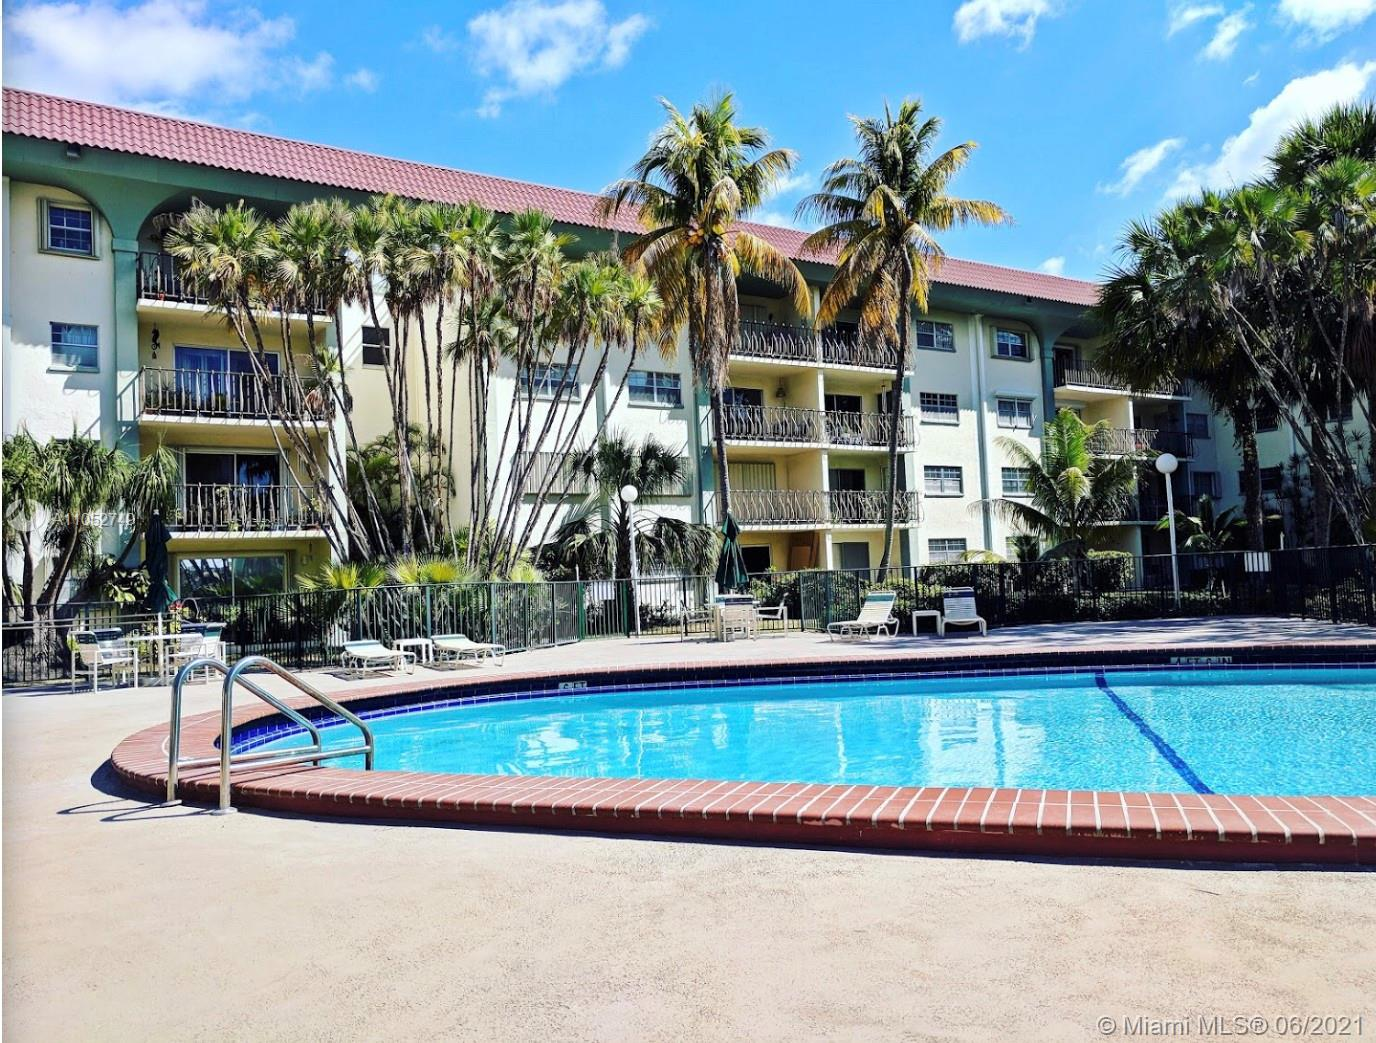 Enjoy the beautiful pool view from your balcony! Best located 2/2 condo with large open floor plan in Granada Dadeland. Walk to Dadeland Mall, restaurants, shopping and the metrorail!  This apartment has been well maintained with carpeting throughout, lots of closets, balcony access from living room & 2nd bedroom and features the original cabinetry….all in good condition! Monthly maintenance fee includes building insurance, amenities, cable, water.    BONUS…2 ASSIGNED PARKING SPACES!